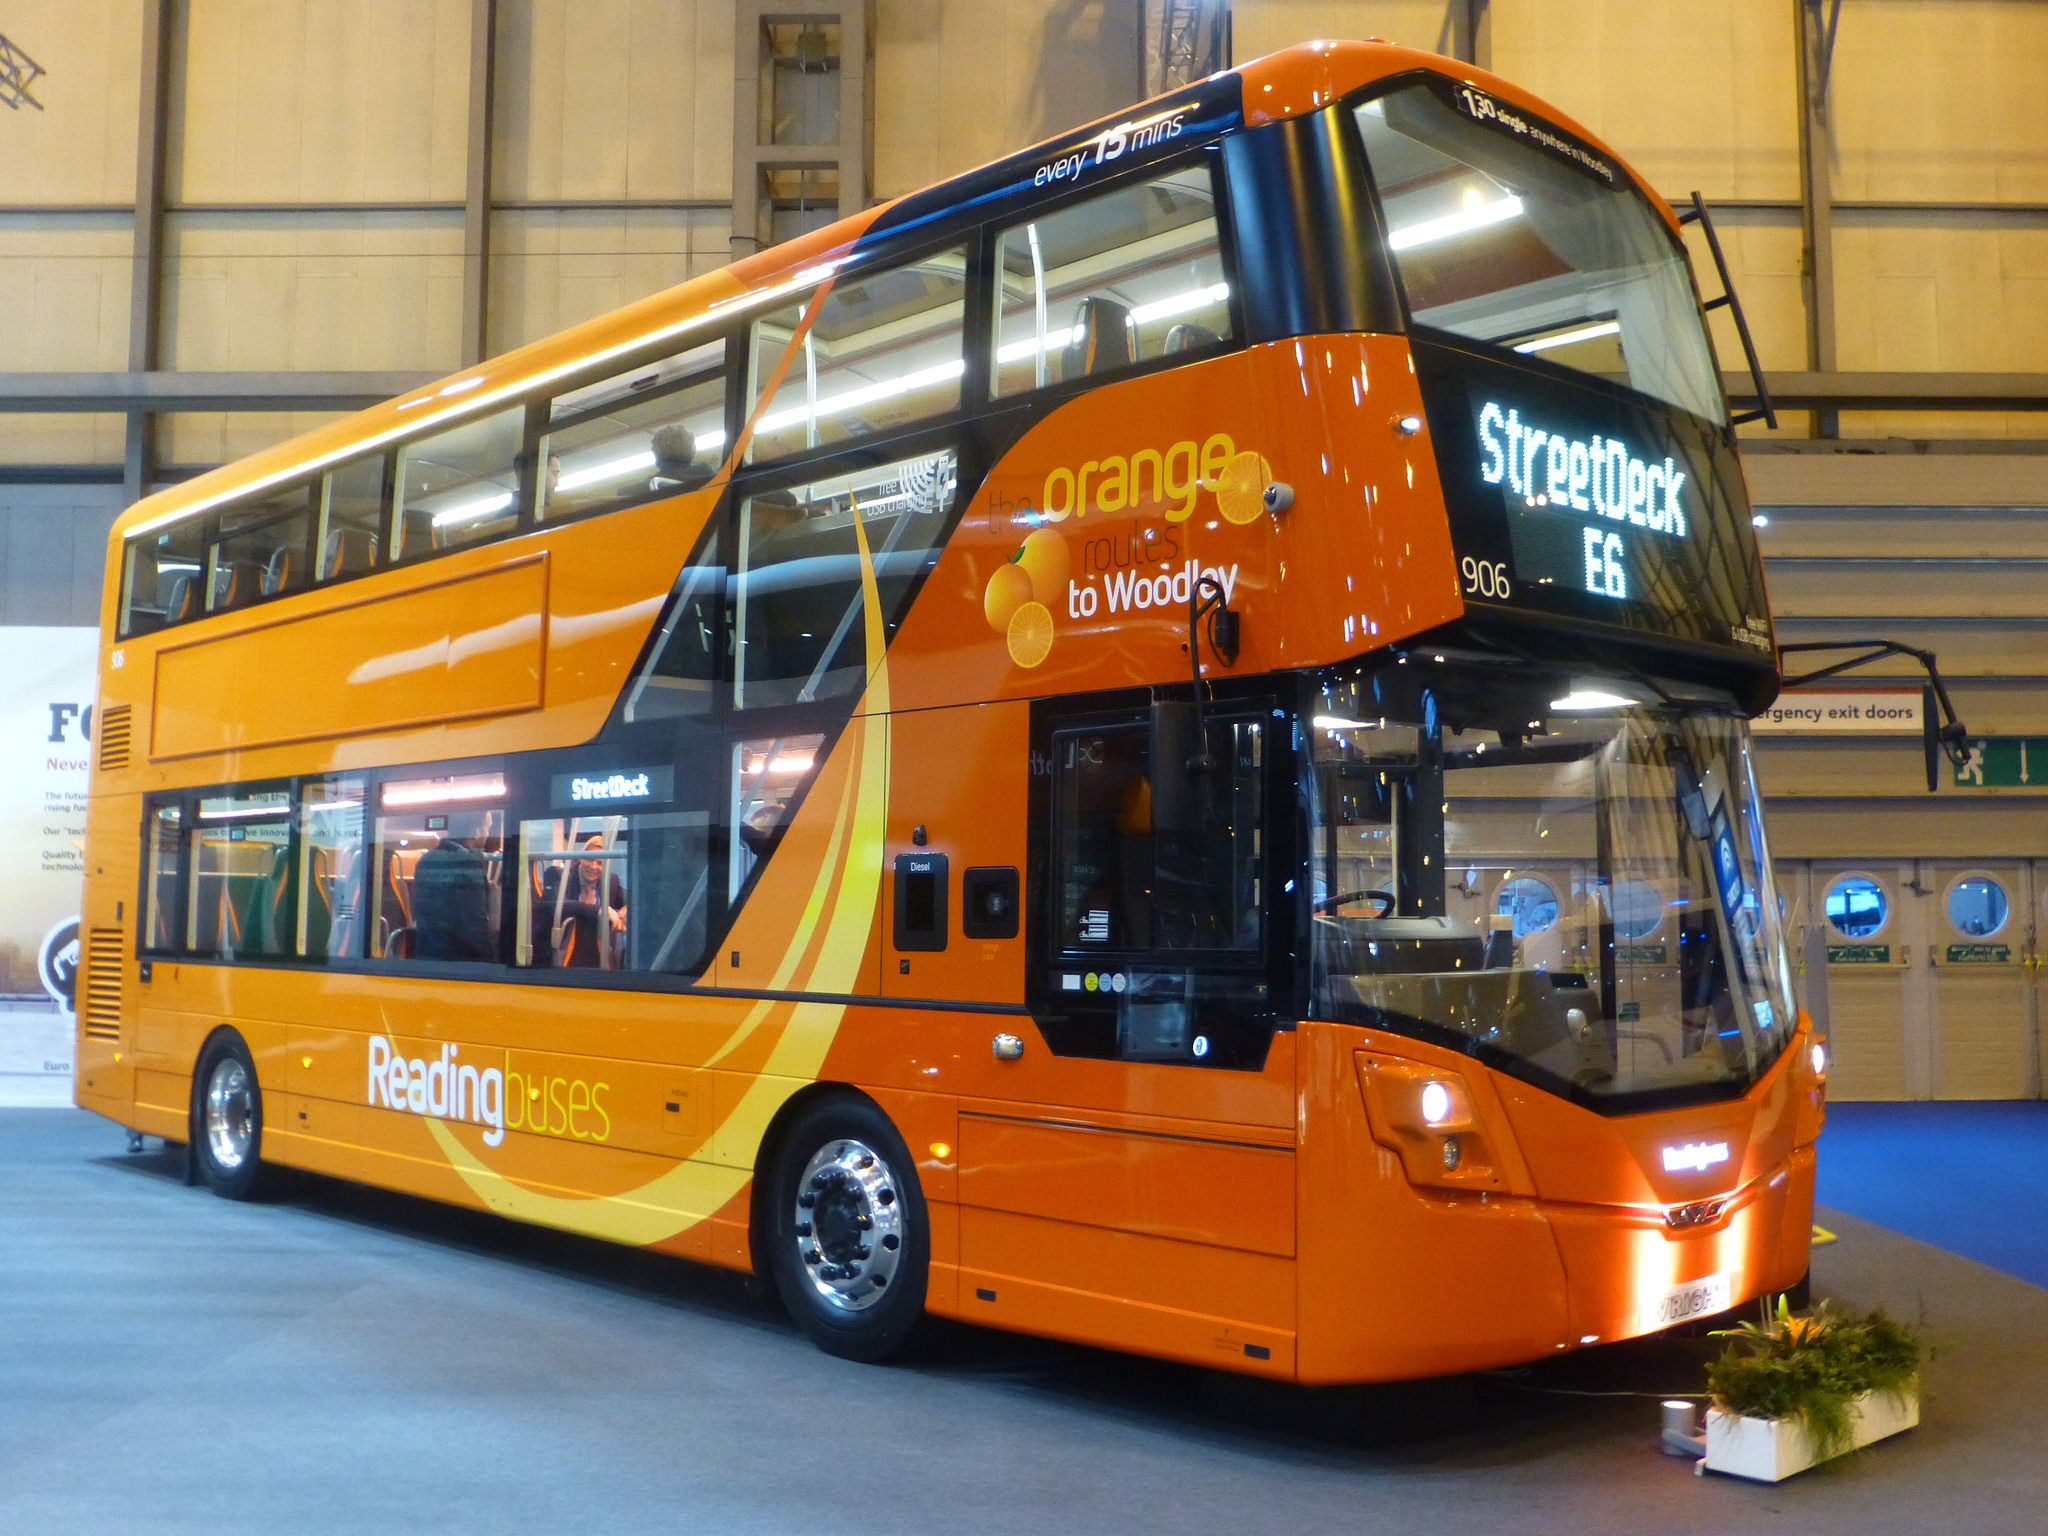 #AYearOfBuses 13: the Orange routes Reading – Woodley